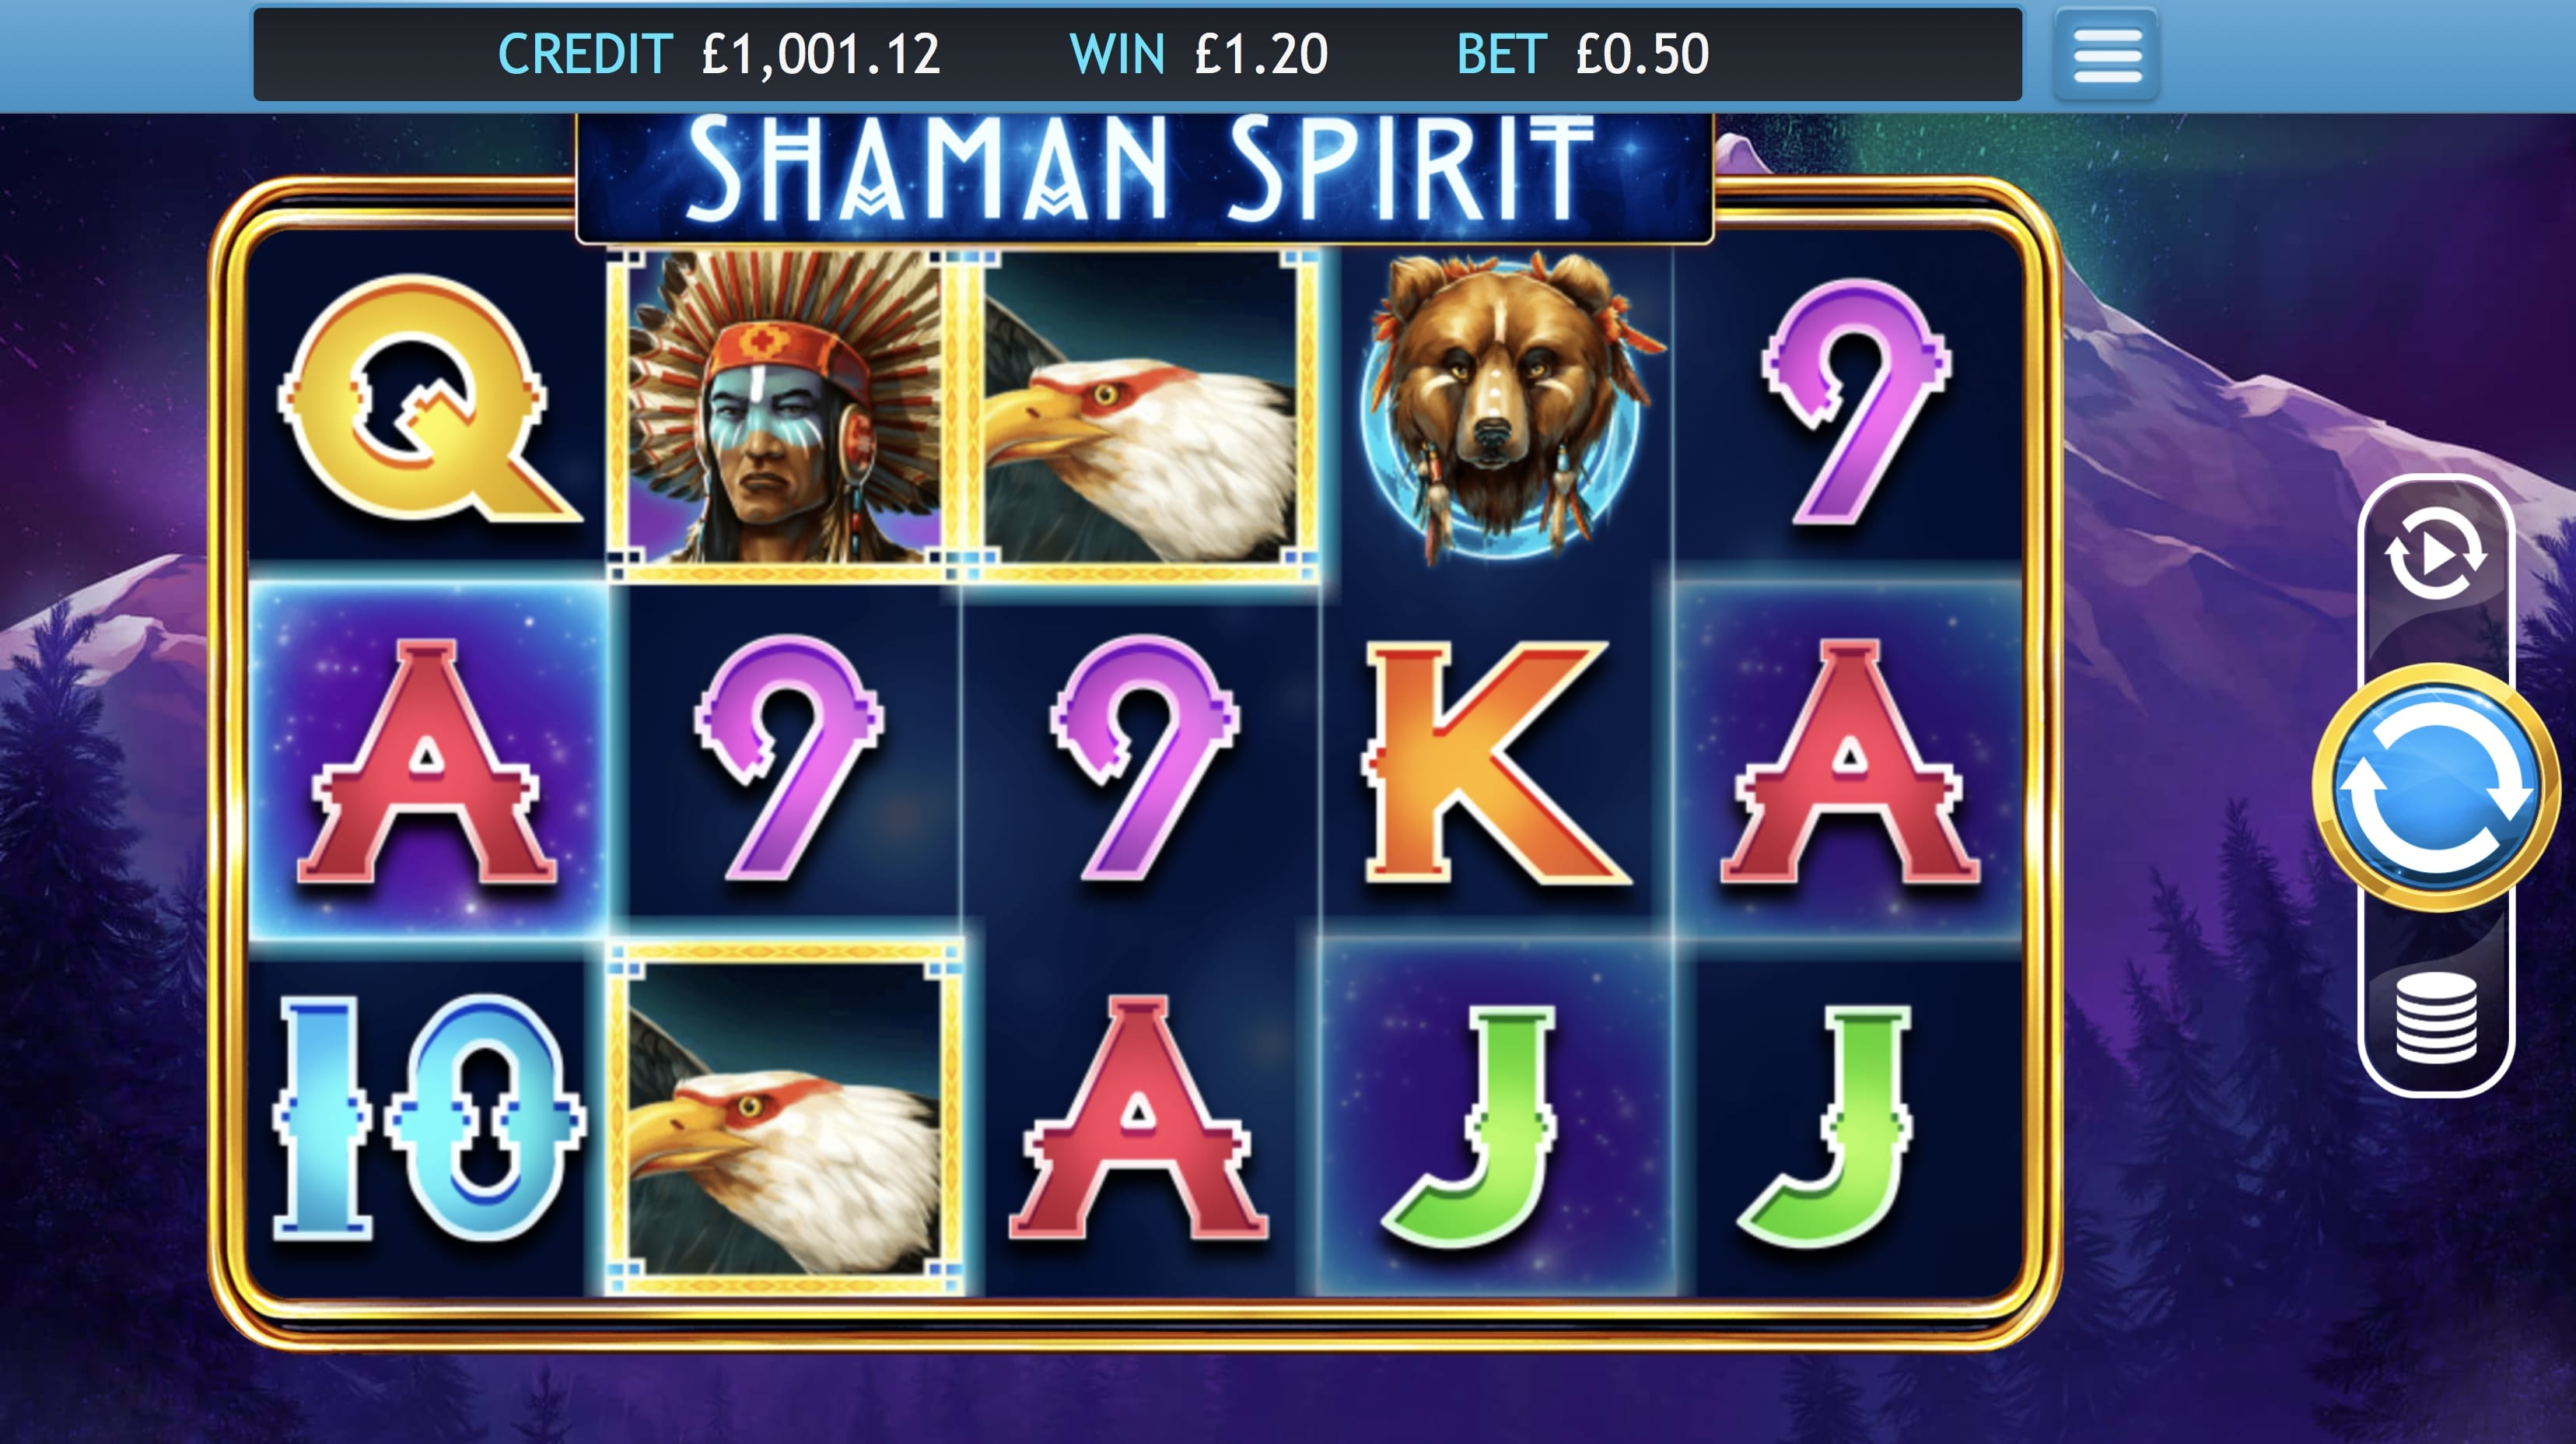 Shaman Spirit online slots game gameplay